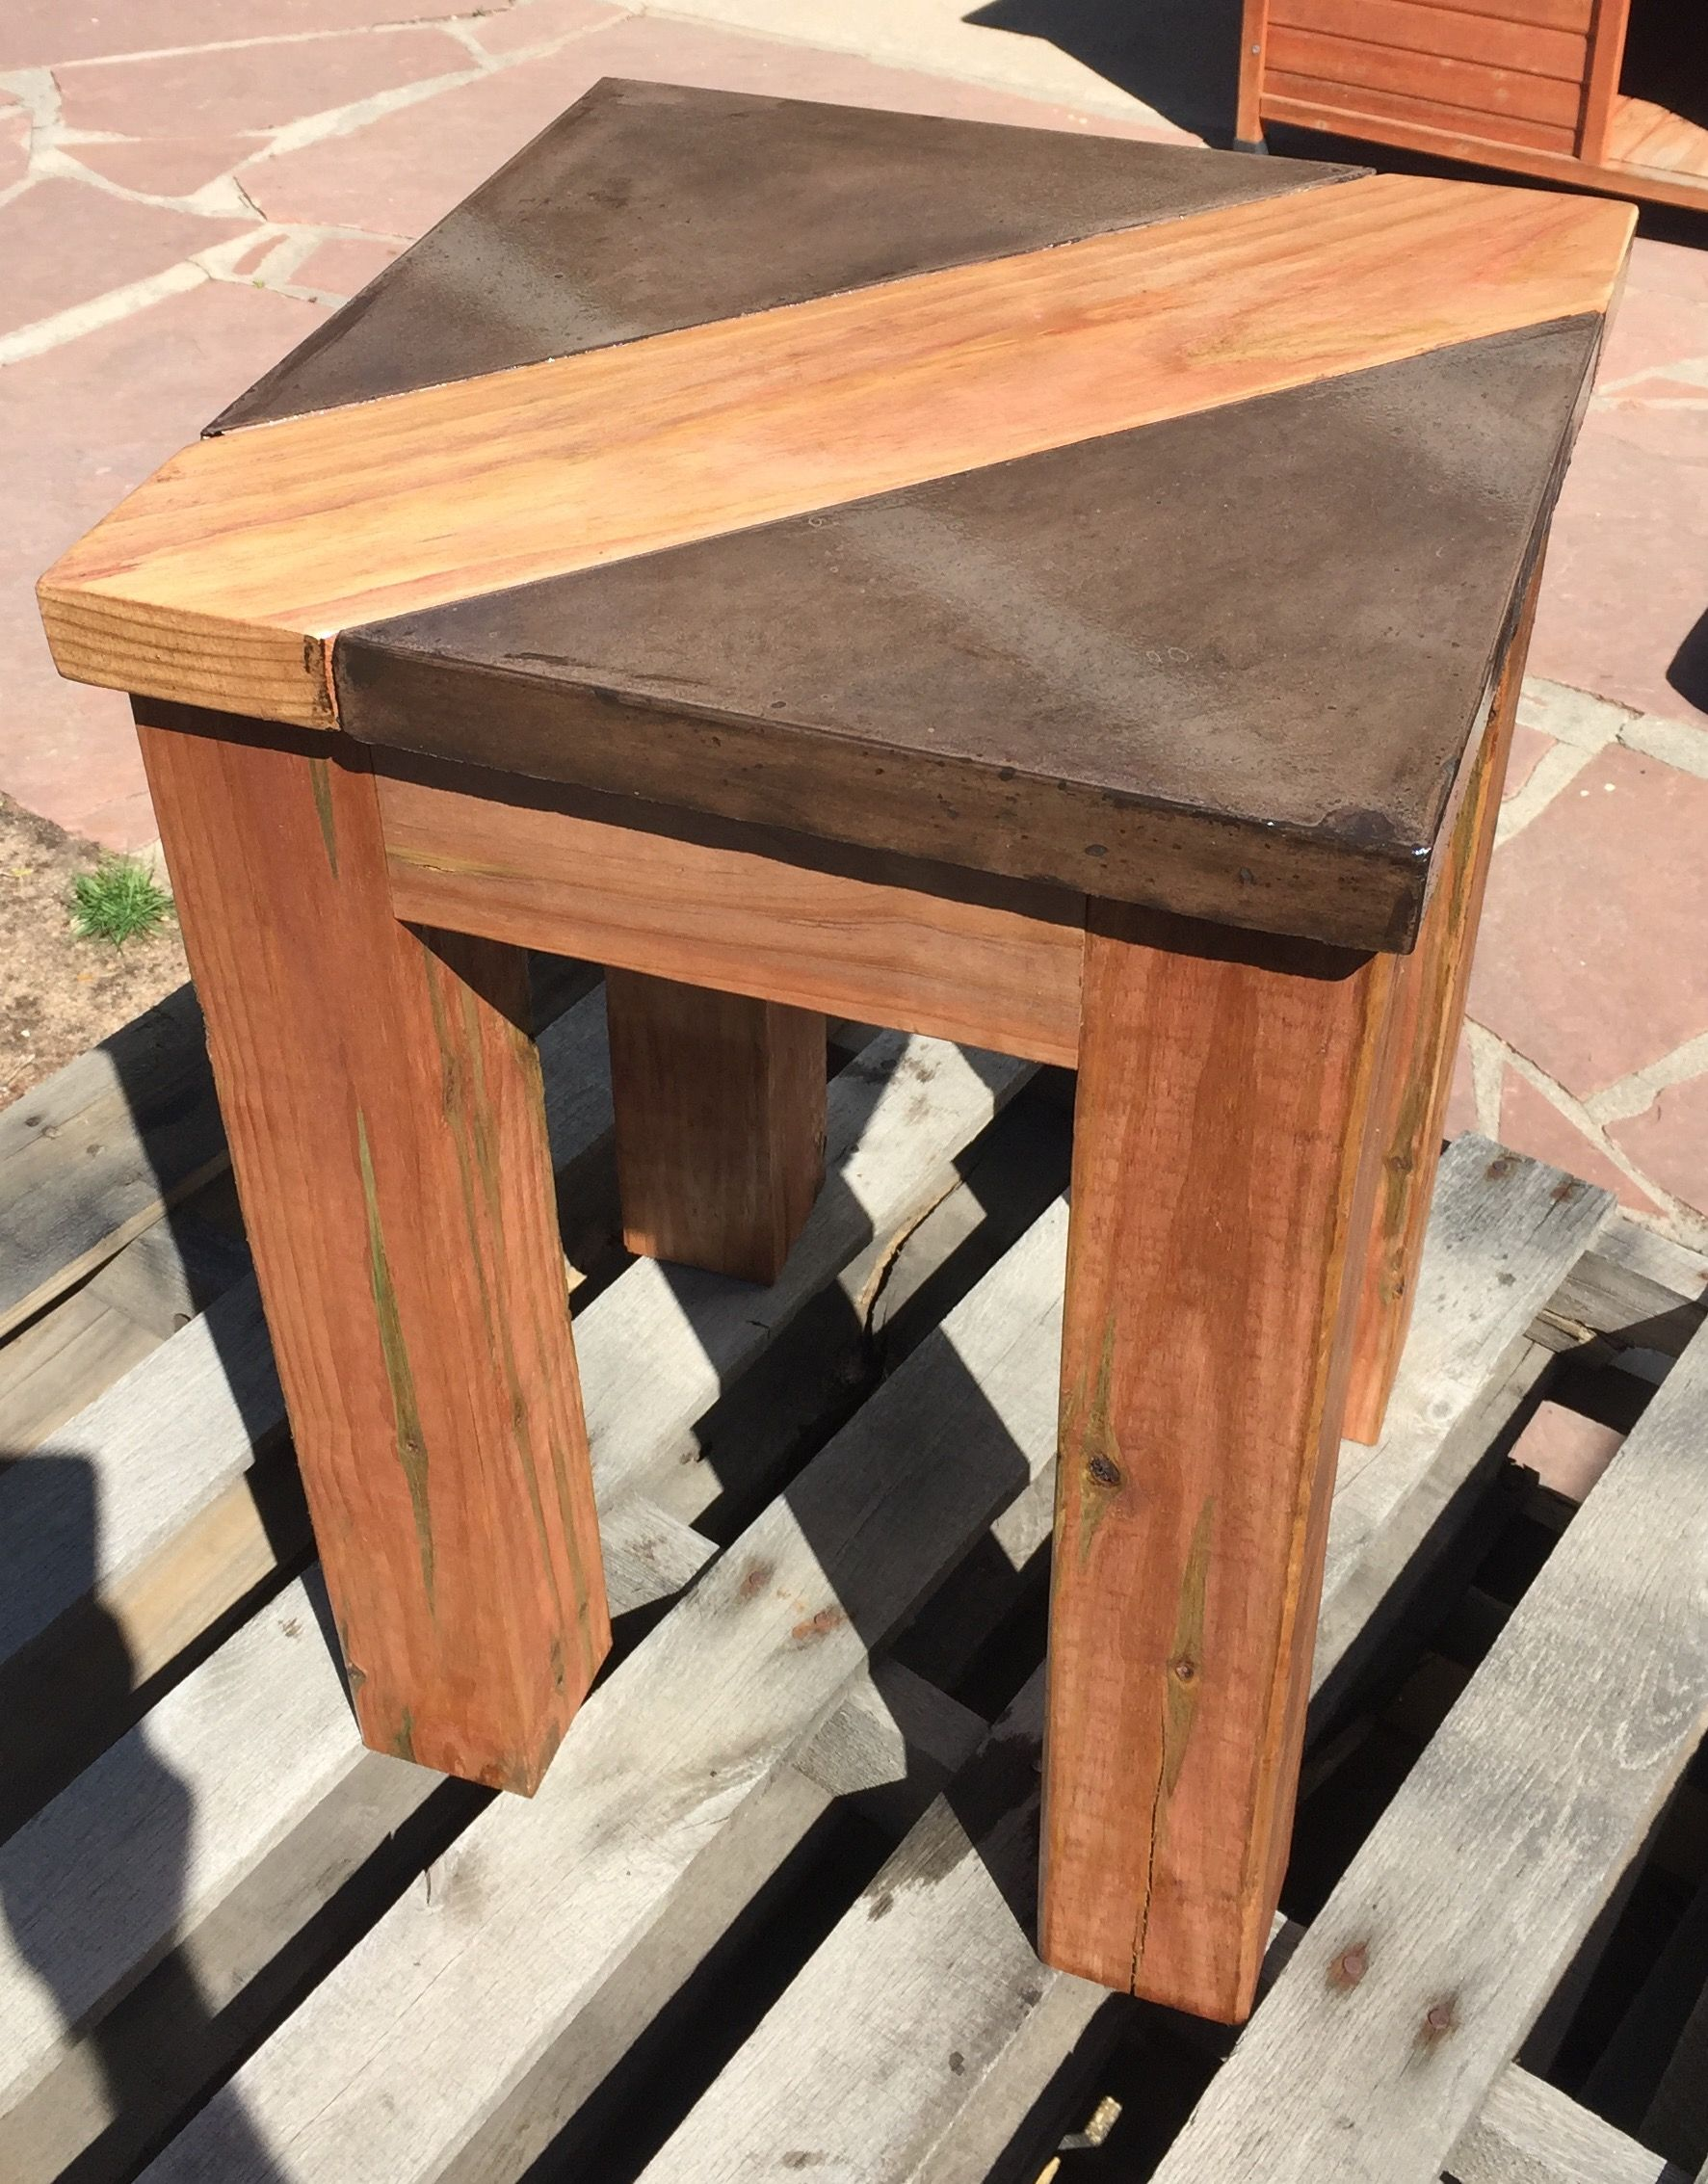 Walnut Brown Concrete Table Top With Wood Inlay Is Thick Stands Tall Created By Dudley Design Llc